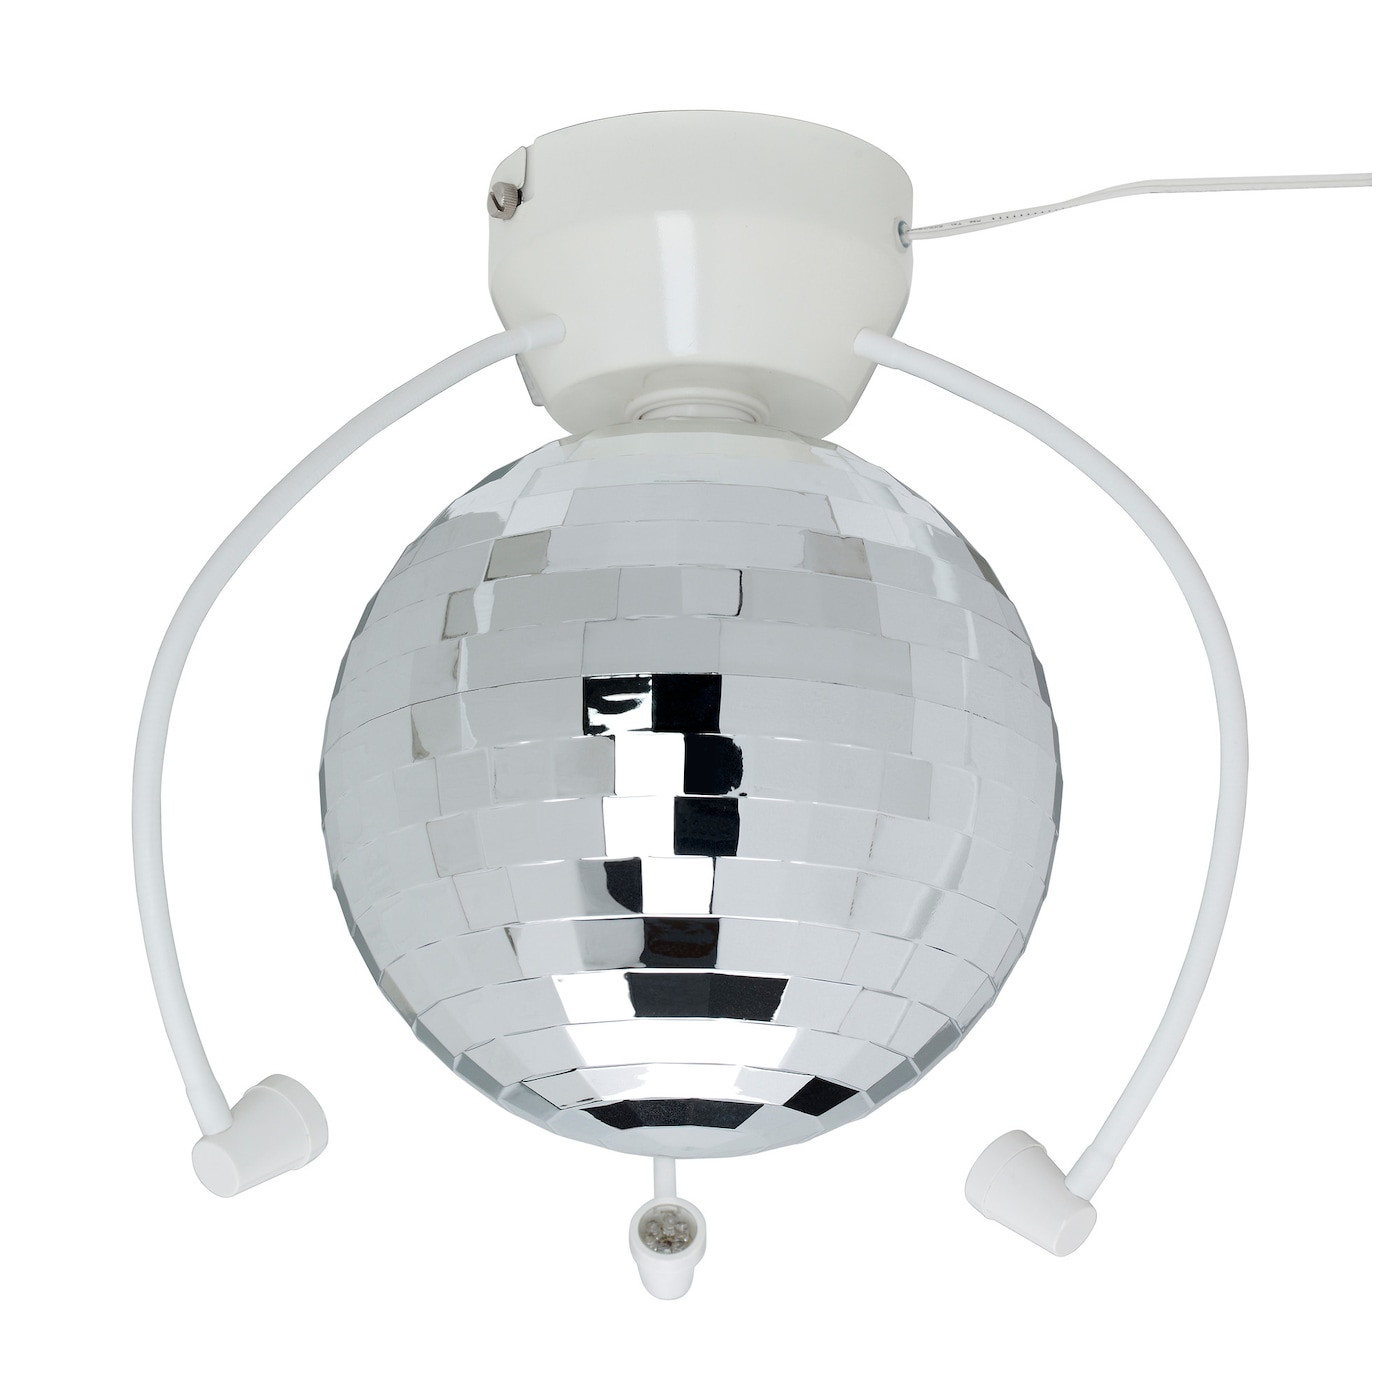 IKEA DANSA disco ball with LED lighting